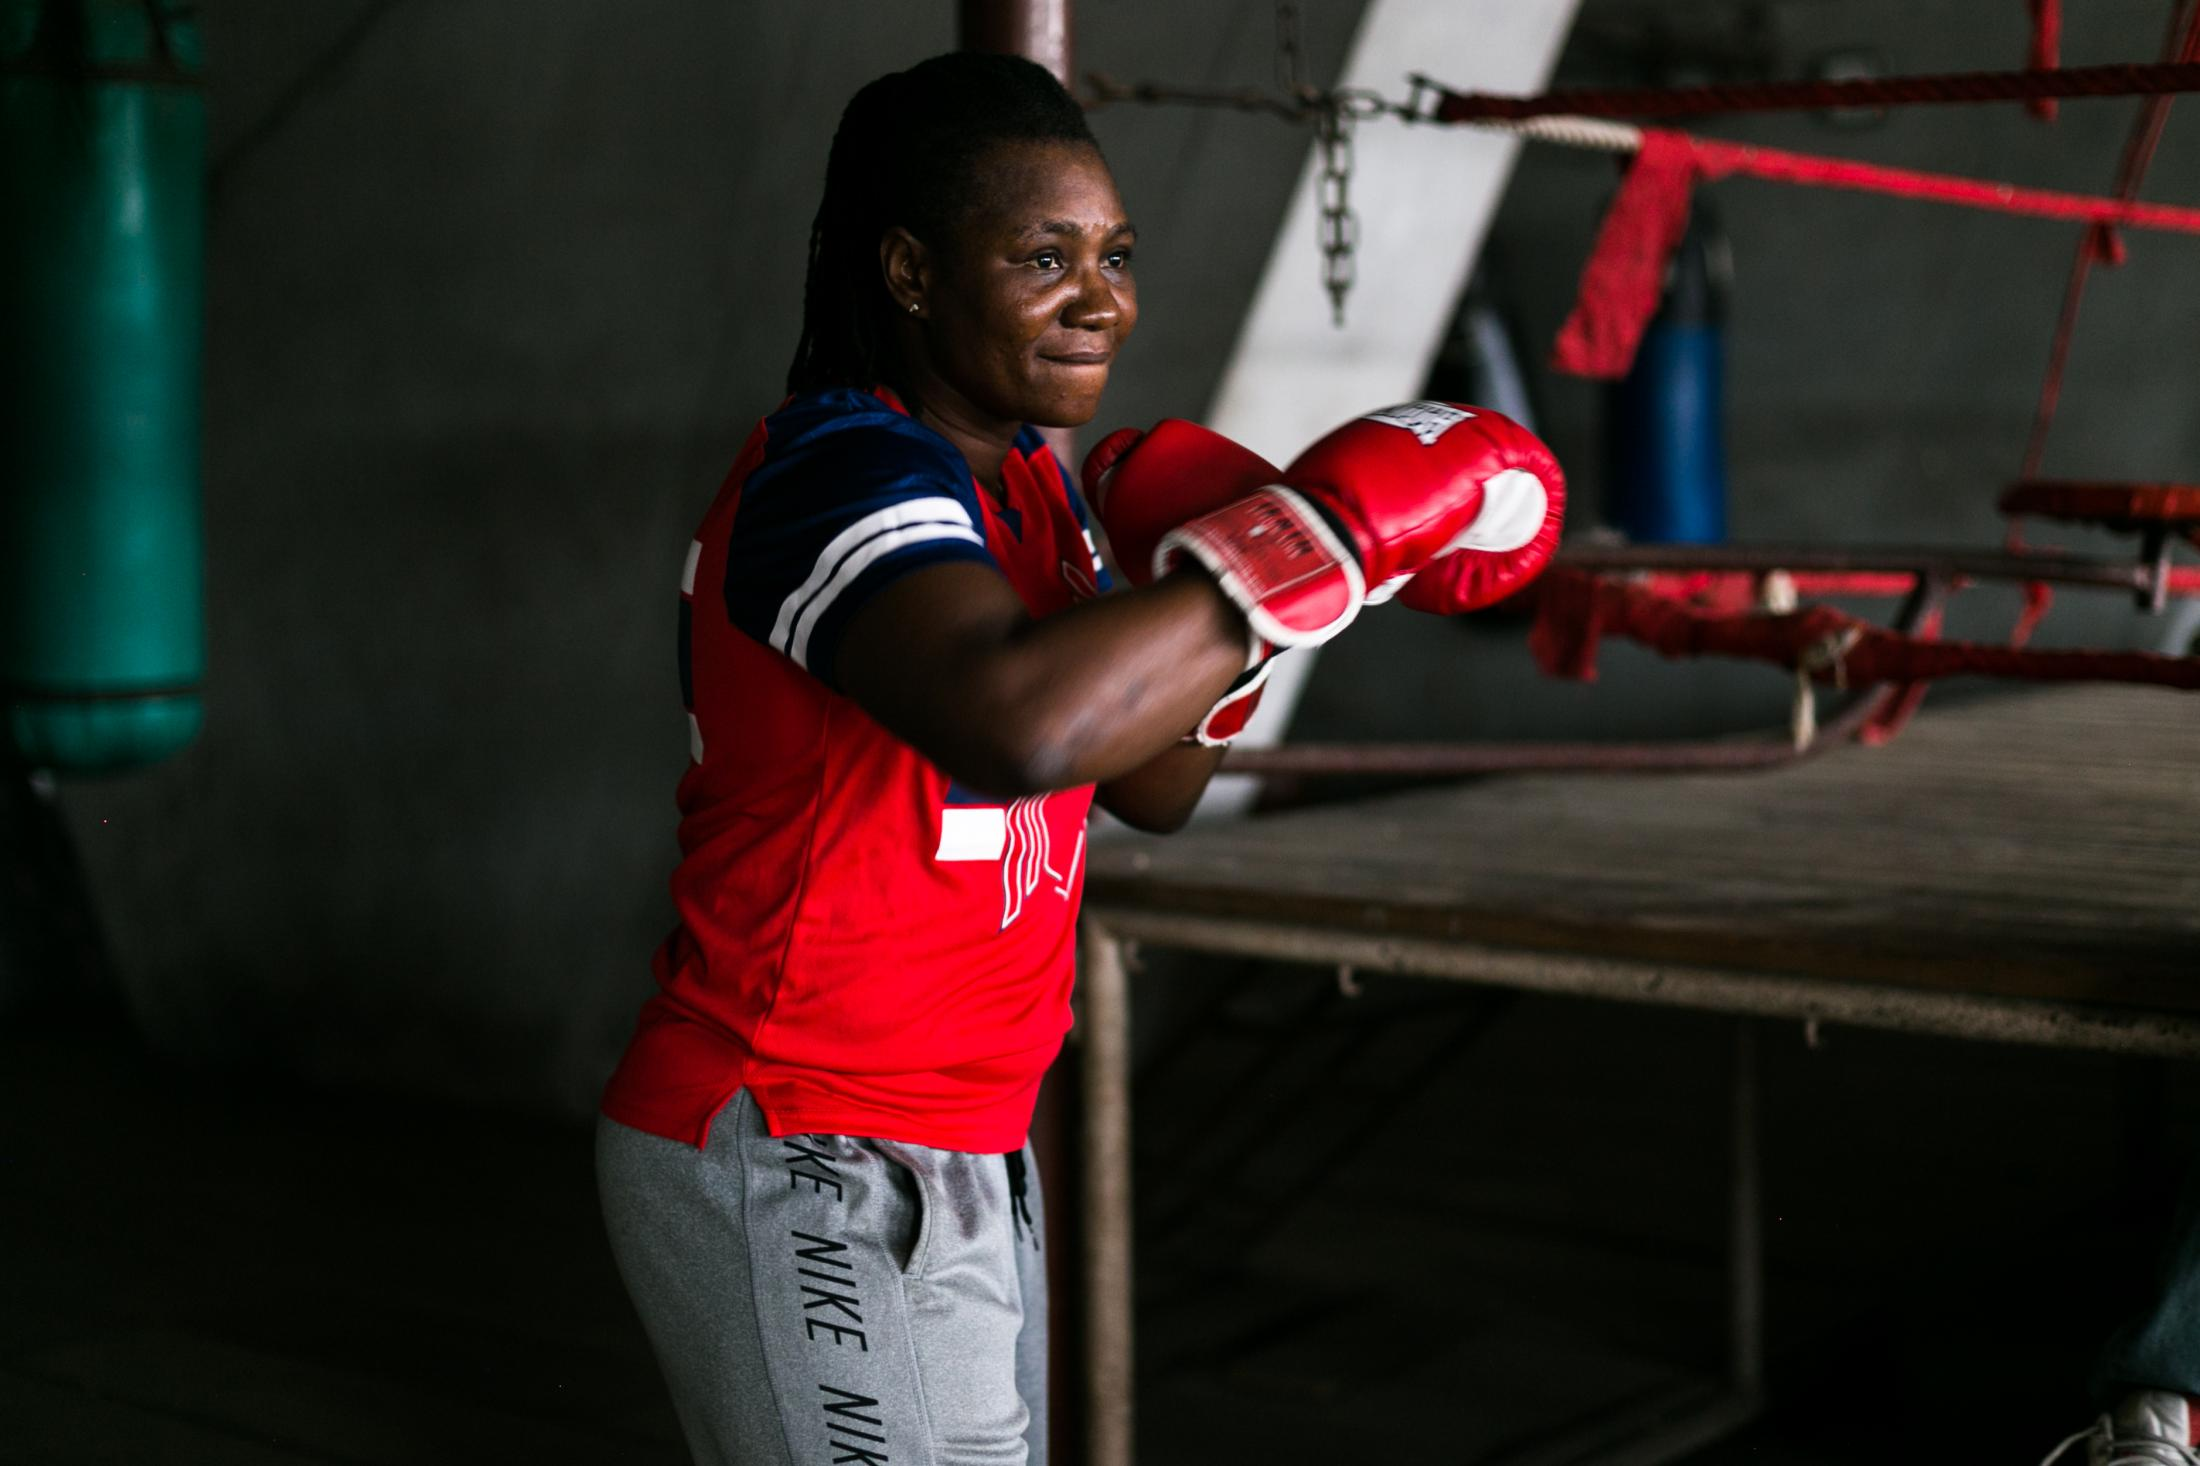 11 July 2019: Edith, warms up for sparring in the National Stadium gym, Lagos, Nigeria